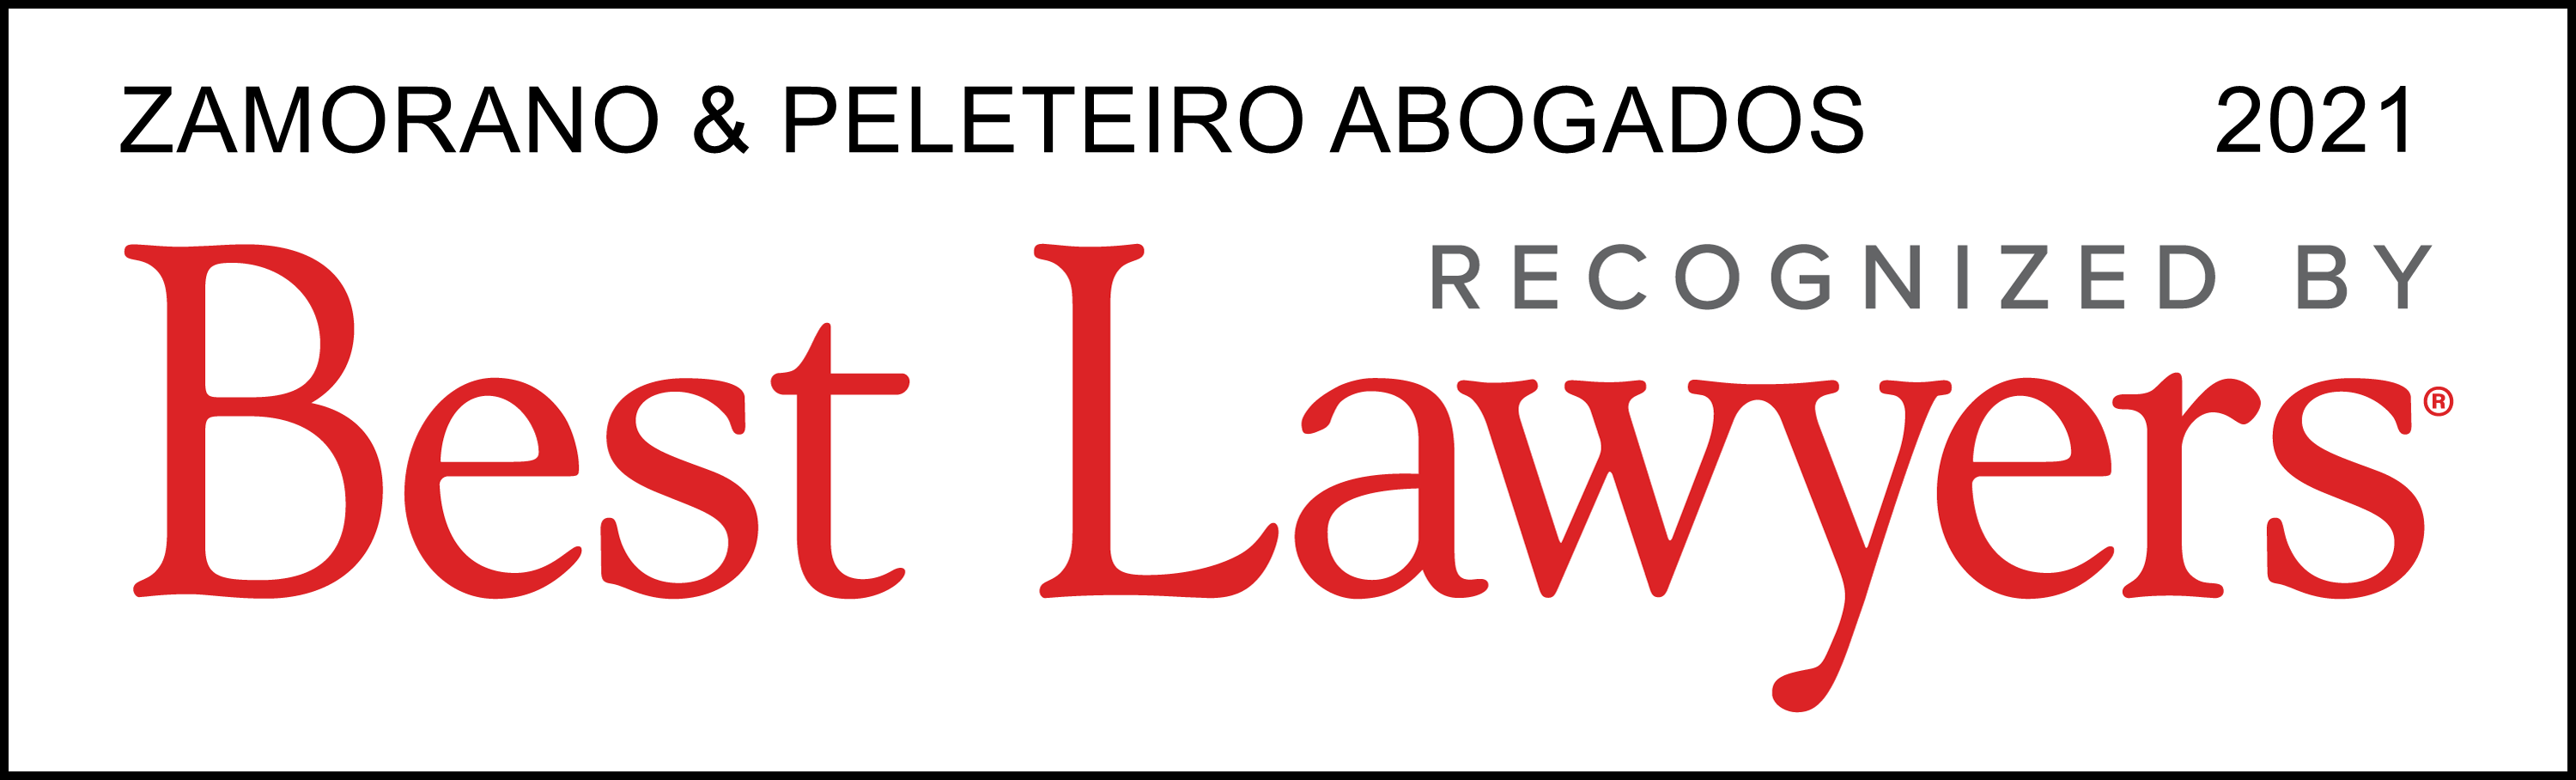 abogados coruña best lawyers